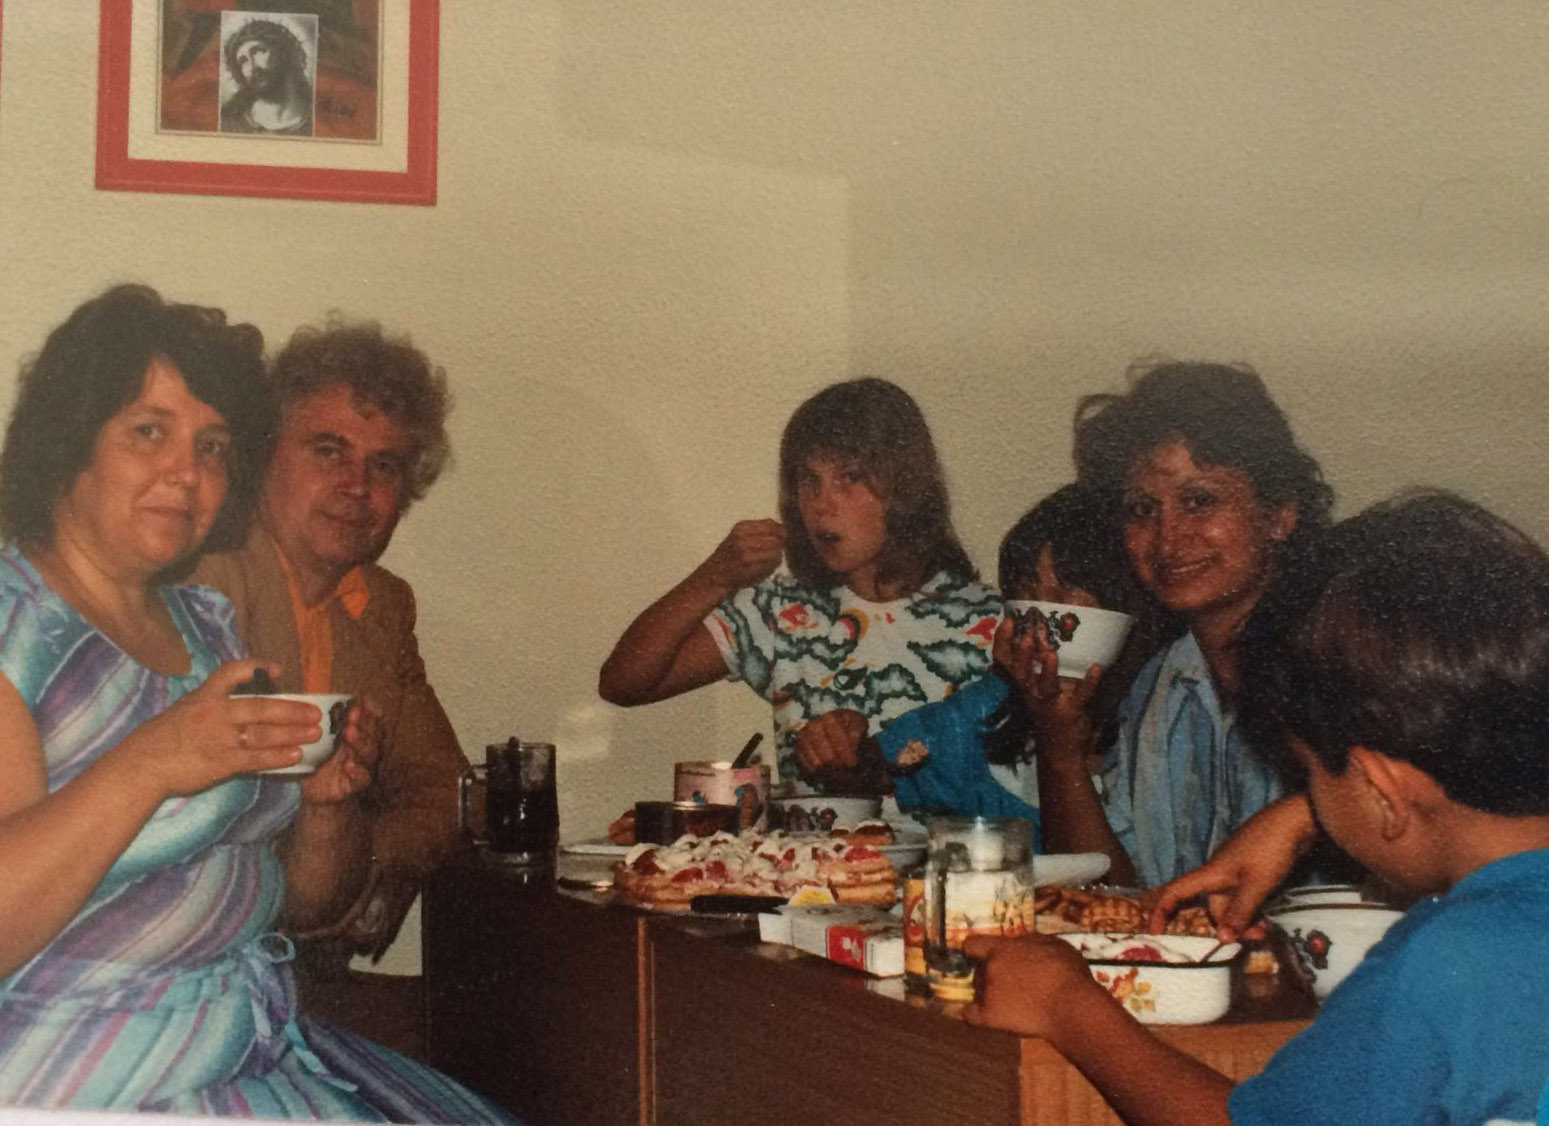 Dina's mother with Russians in an Italian refugee camp in 1989.